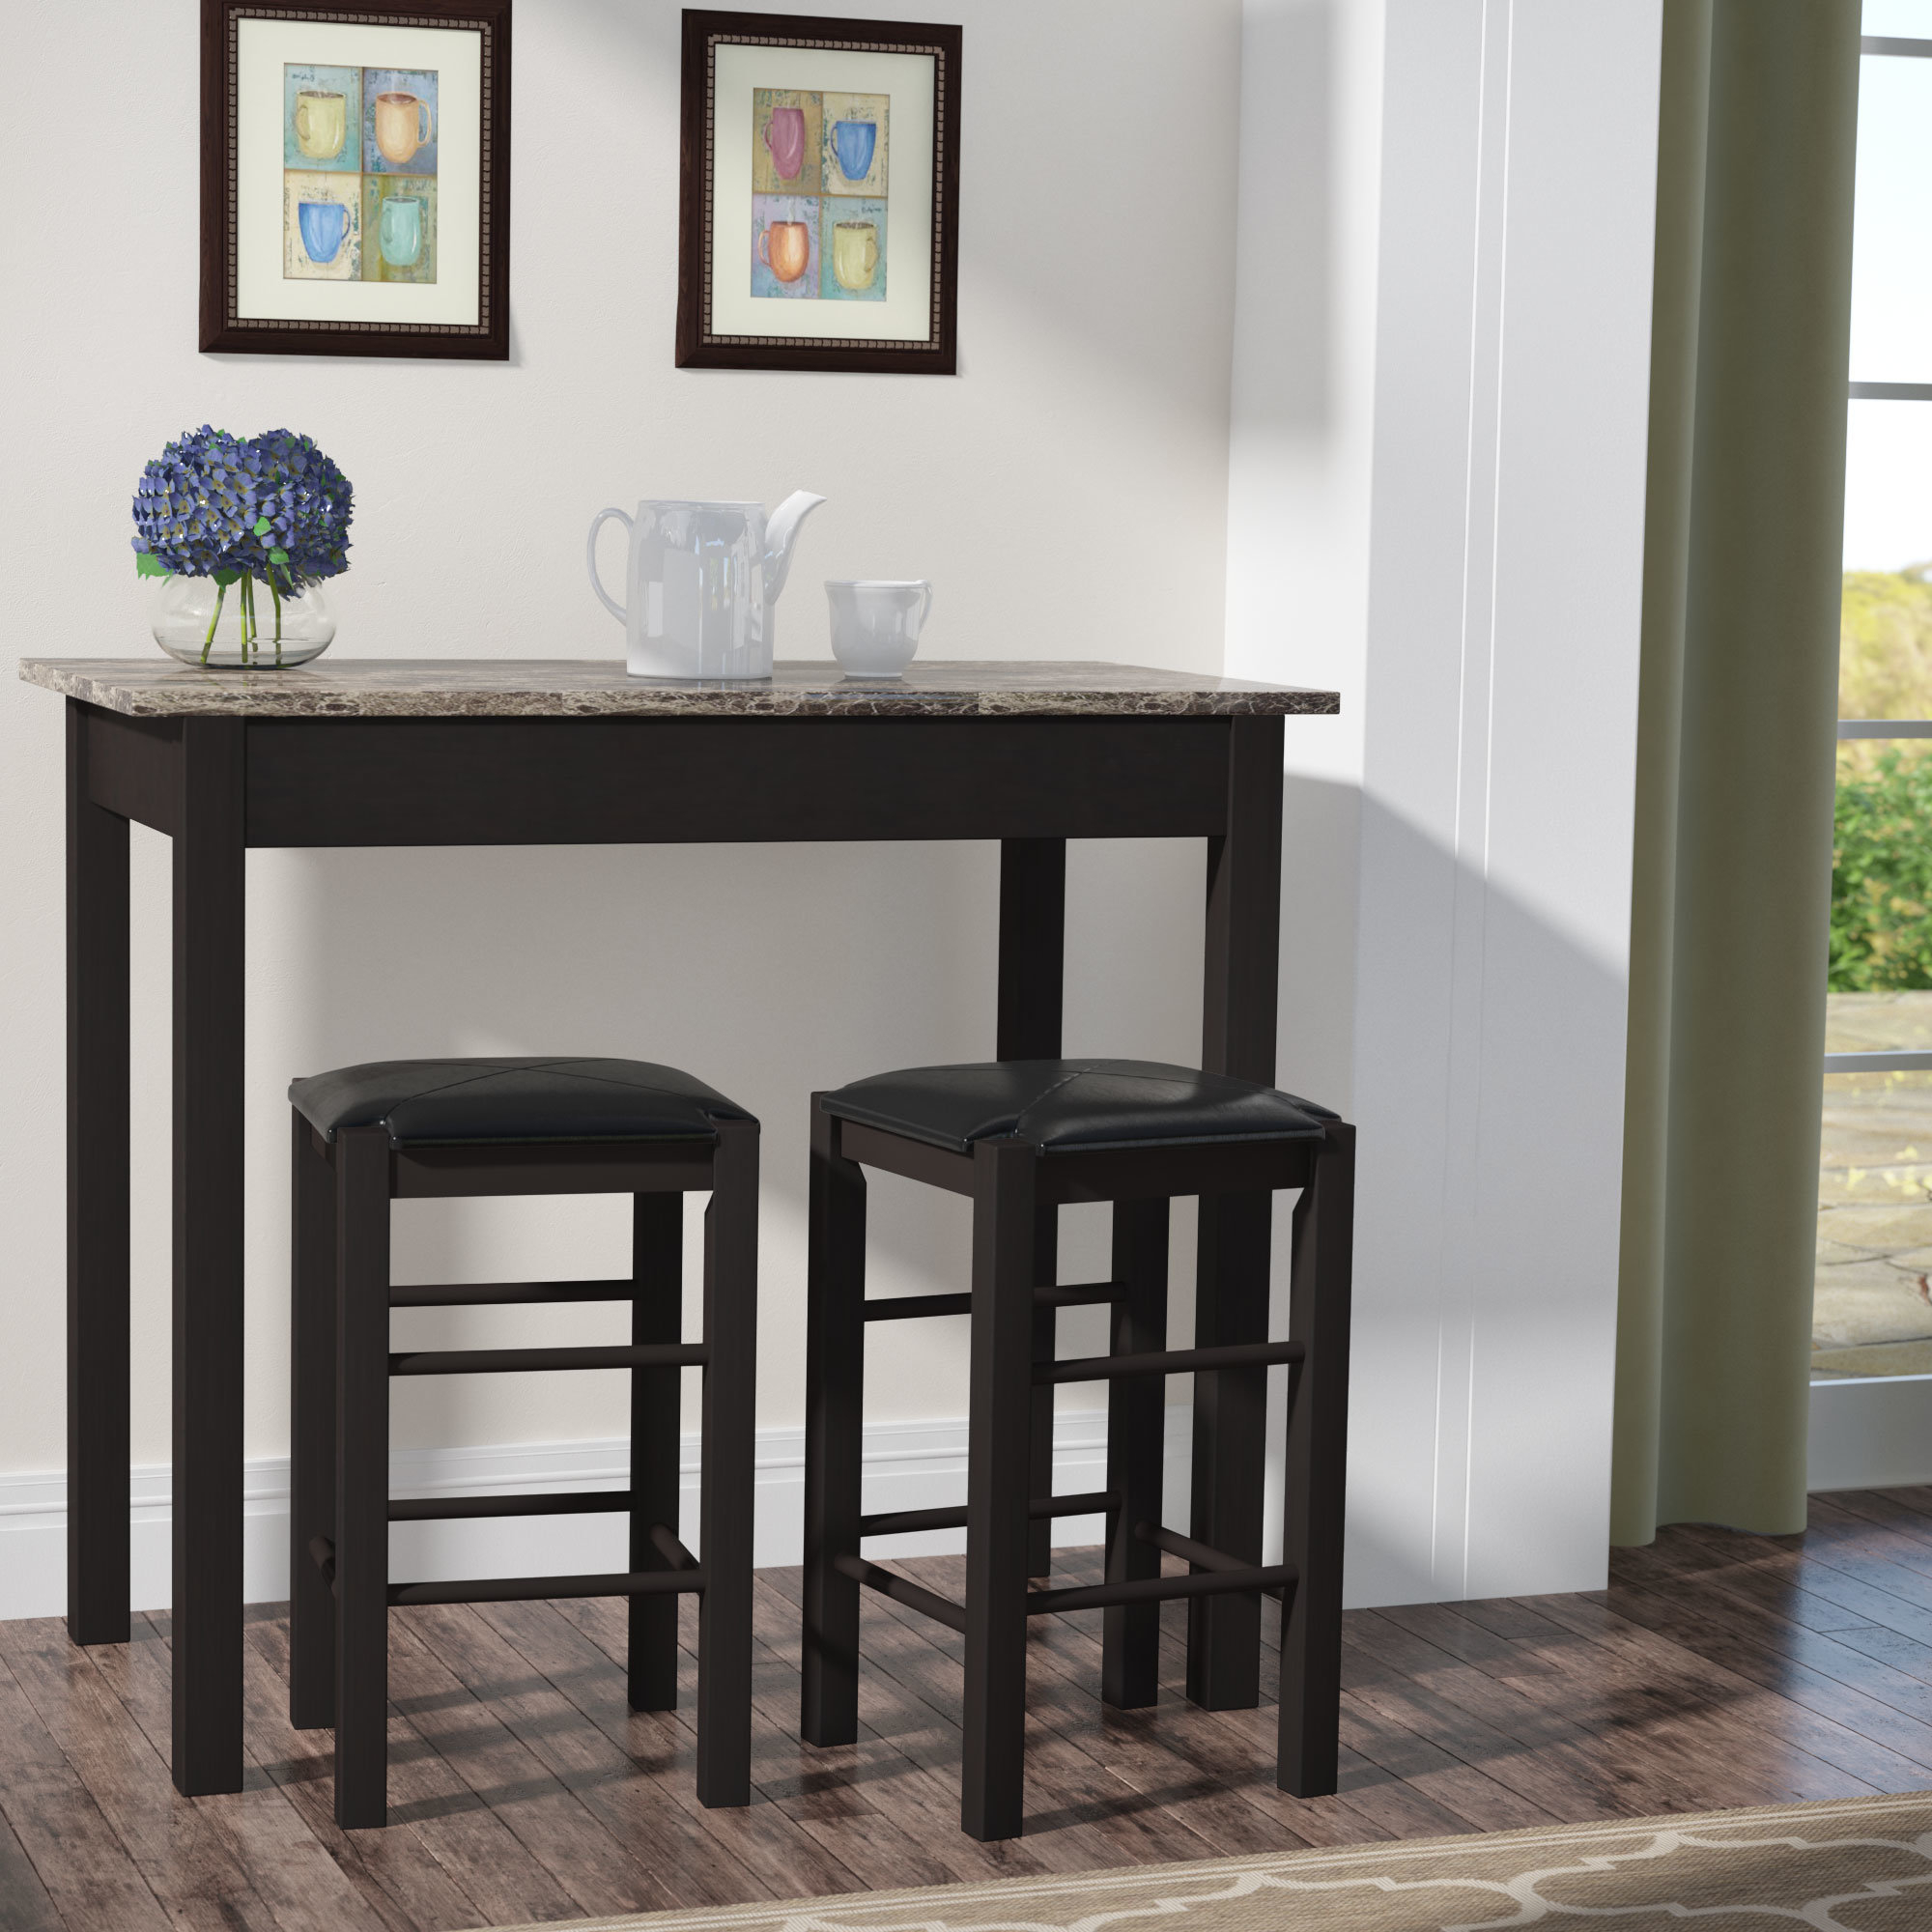 Sheetz 3 Piece Counter Height Dining Set Throughout Newest Tappahannock 3 Piece Counter Height Dining Sets (Image 17 of 20)